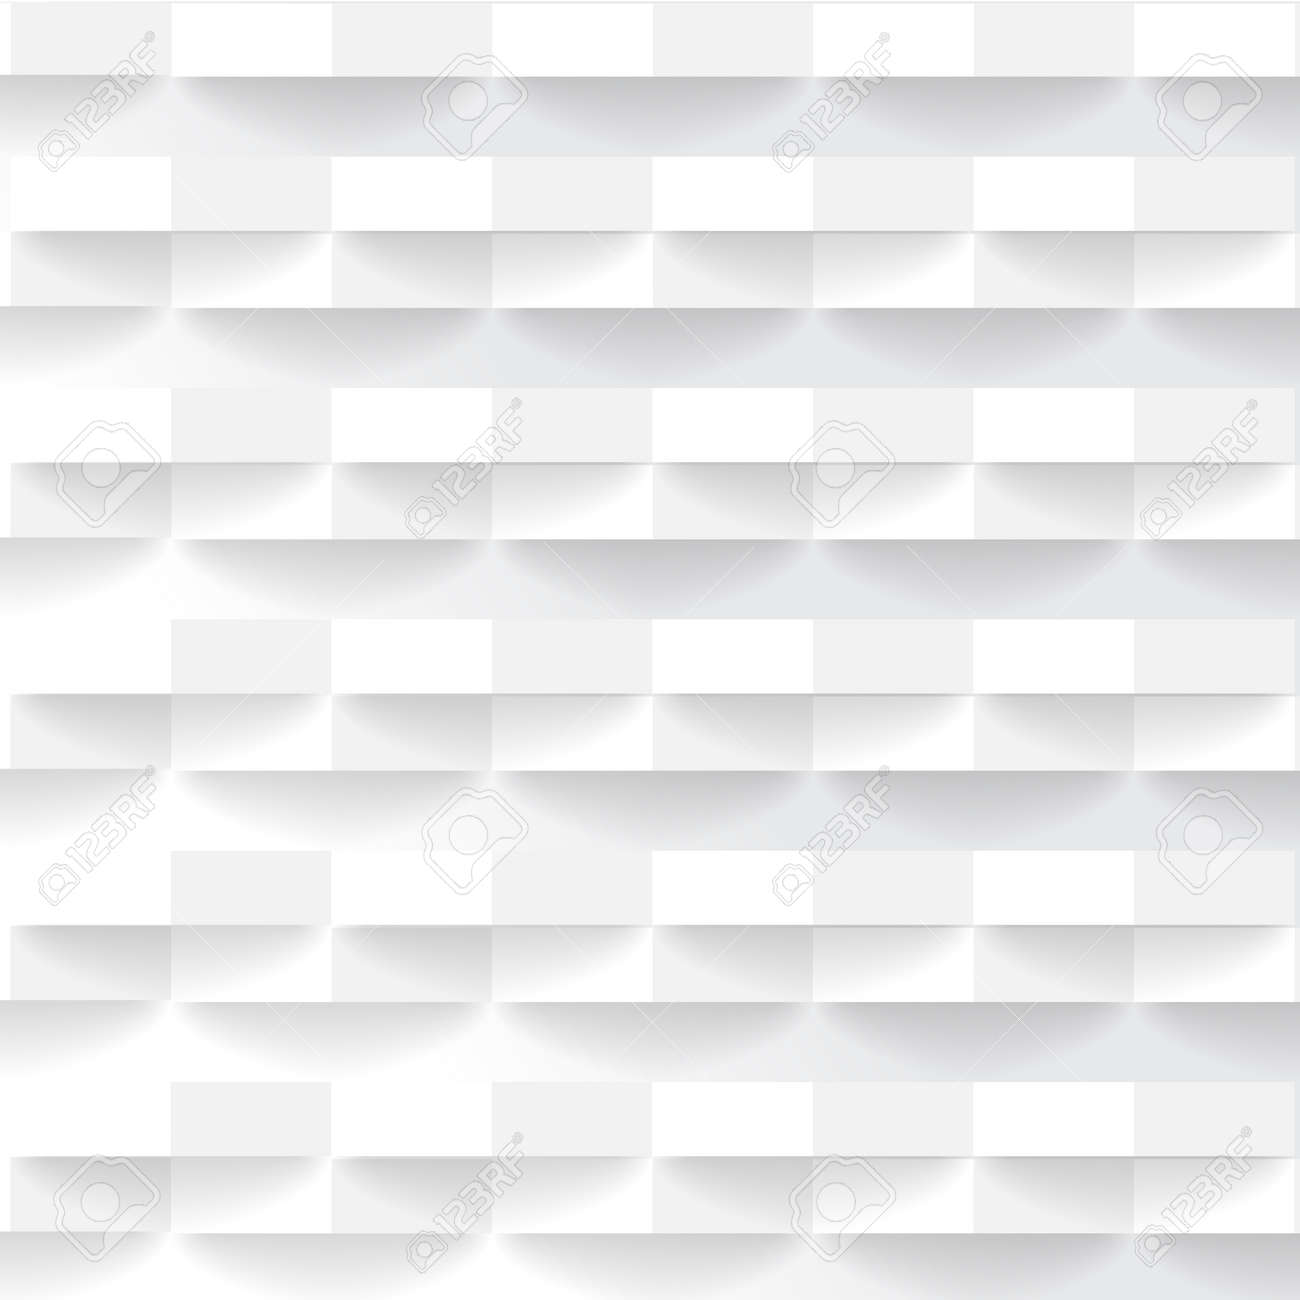 White abstract texture On white background, used for advertising and promotion brochures. - 168592302